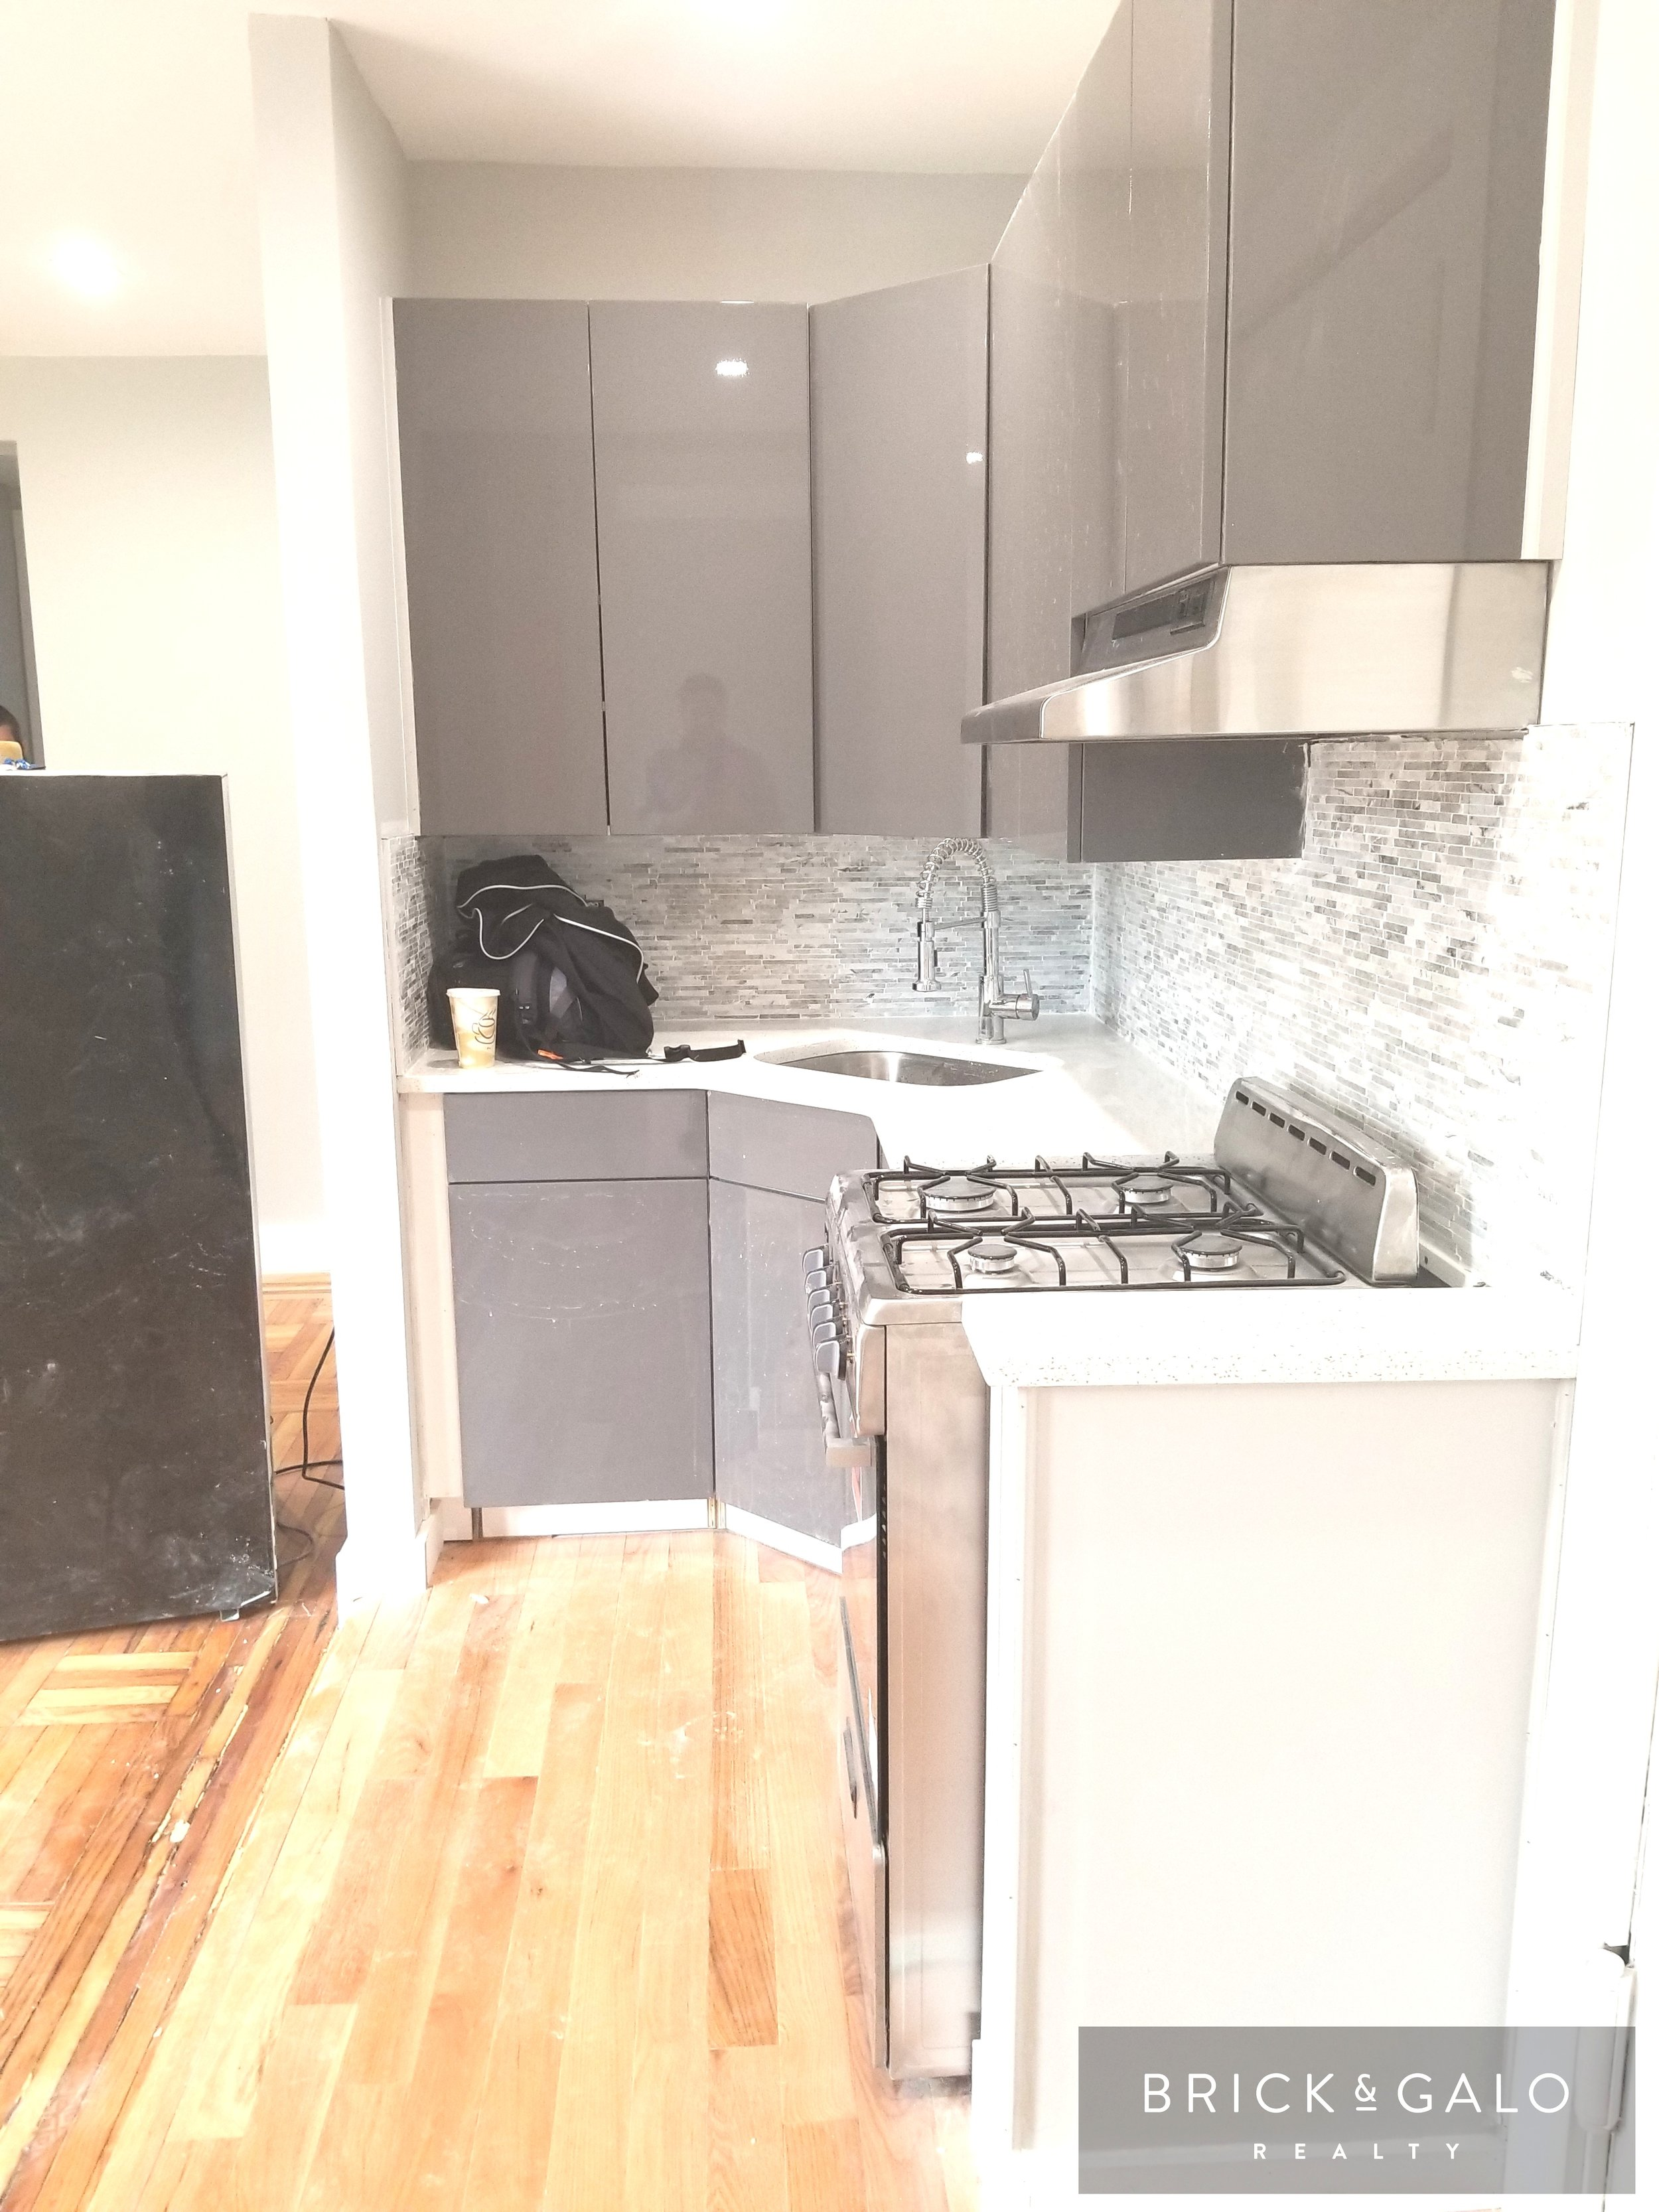 2028 Valentine Avenue Rent $1,7502 BED · 1 Bath -  LARGE, BEAUTIFULLY RENOVATED                 2 BEDROOM 1 BATH!!Unit features:-Spacious unit-Lots of natural sunlight-Renovated kitchen-Super on SiteAMAZING BUILDING!! AMAZING UNIT.....To set up viewing contact our office at (212)281-8500 or email: Info@brickandgalo.com